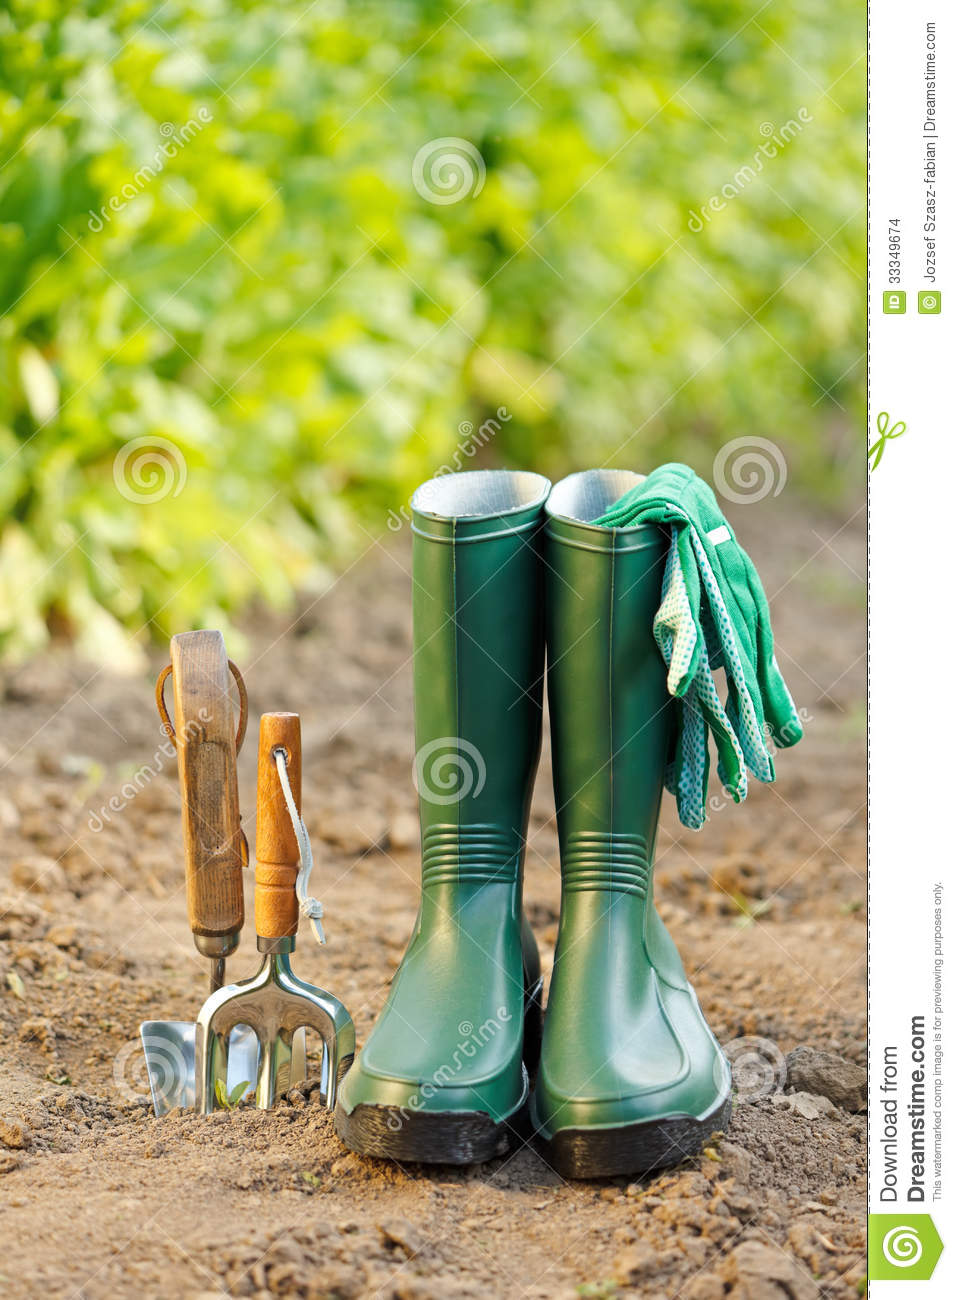 Gardening tools and equipment stock images image 33349674 for Tools and equipment in planting